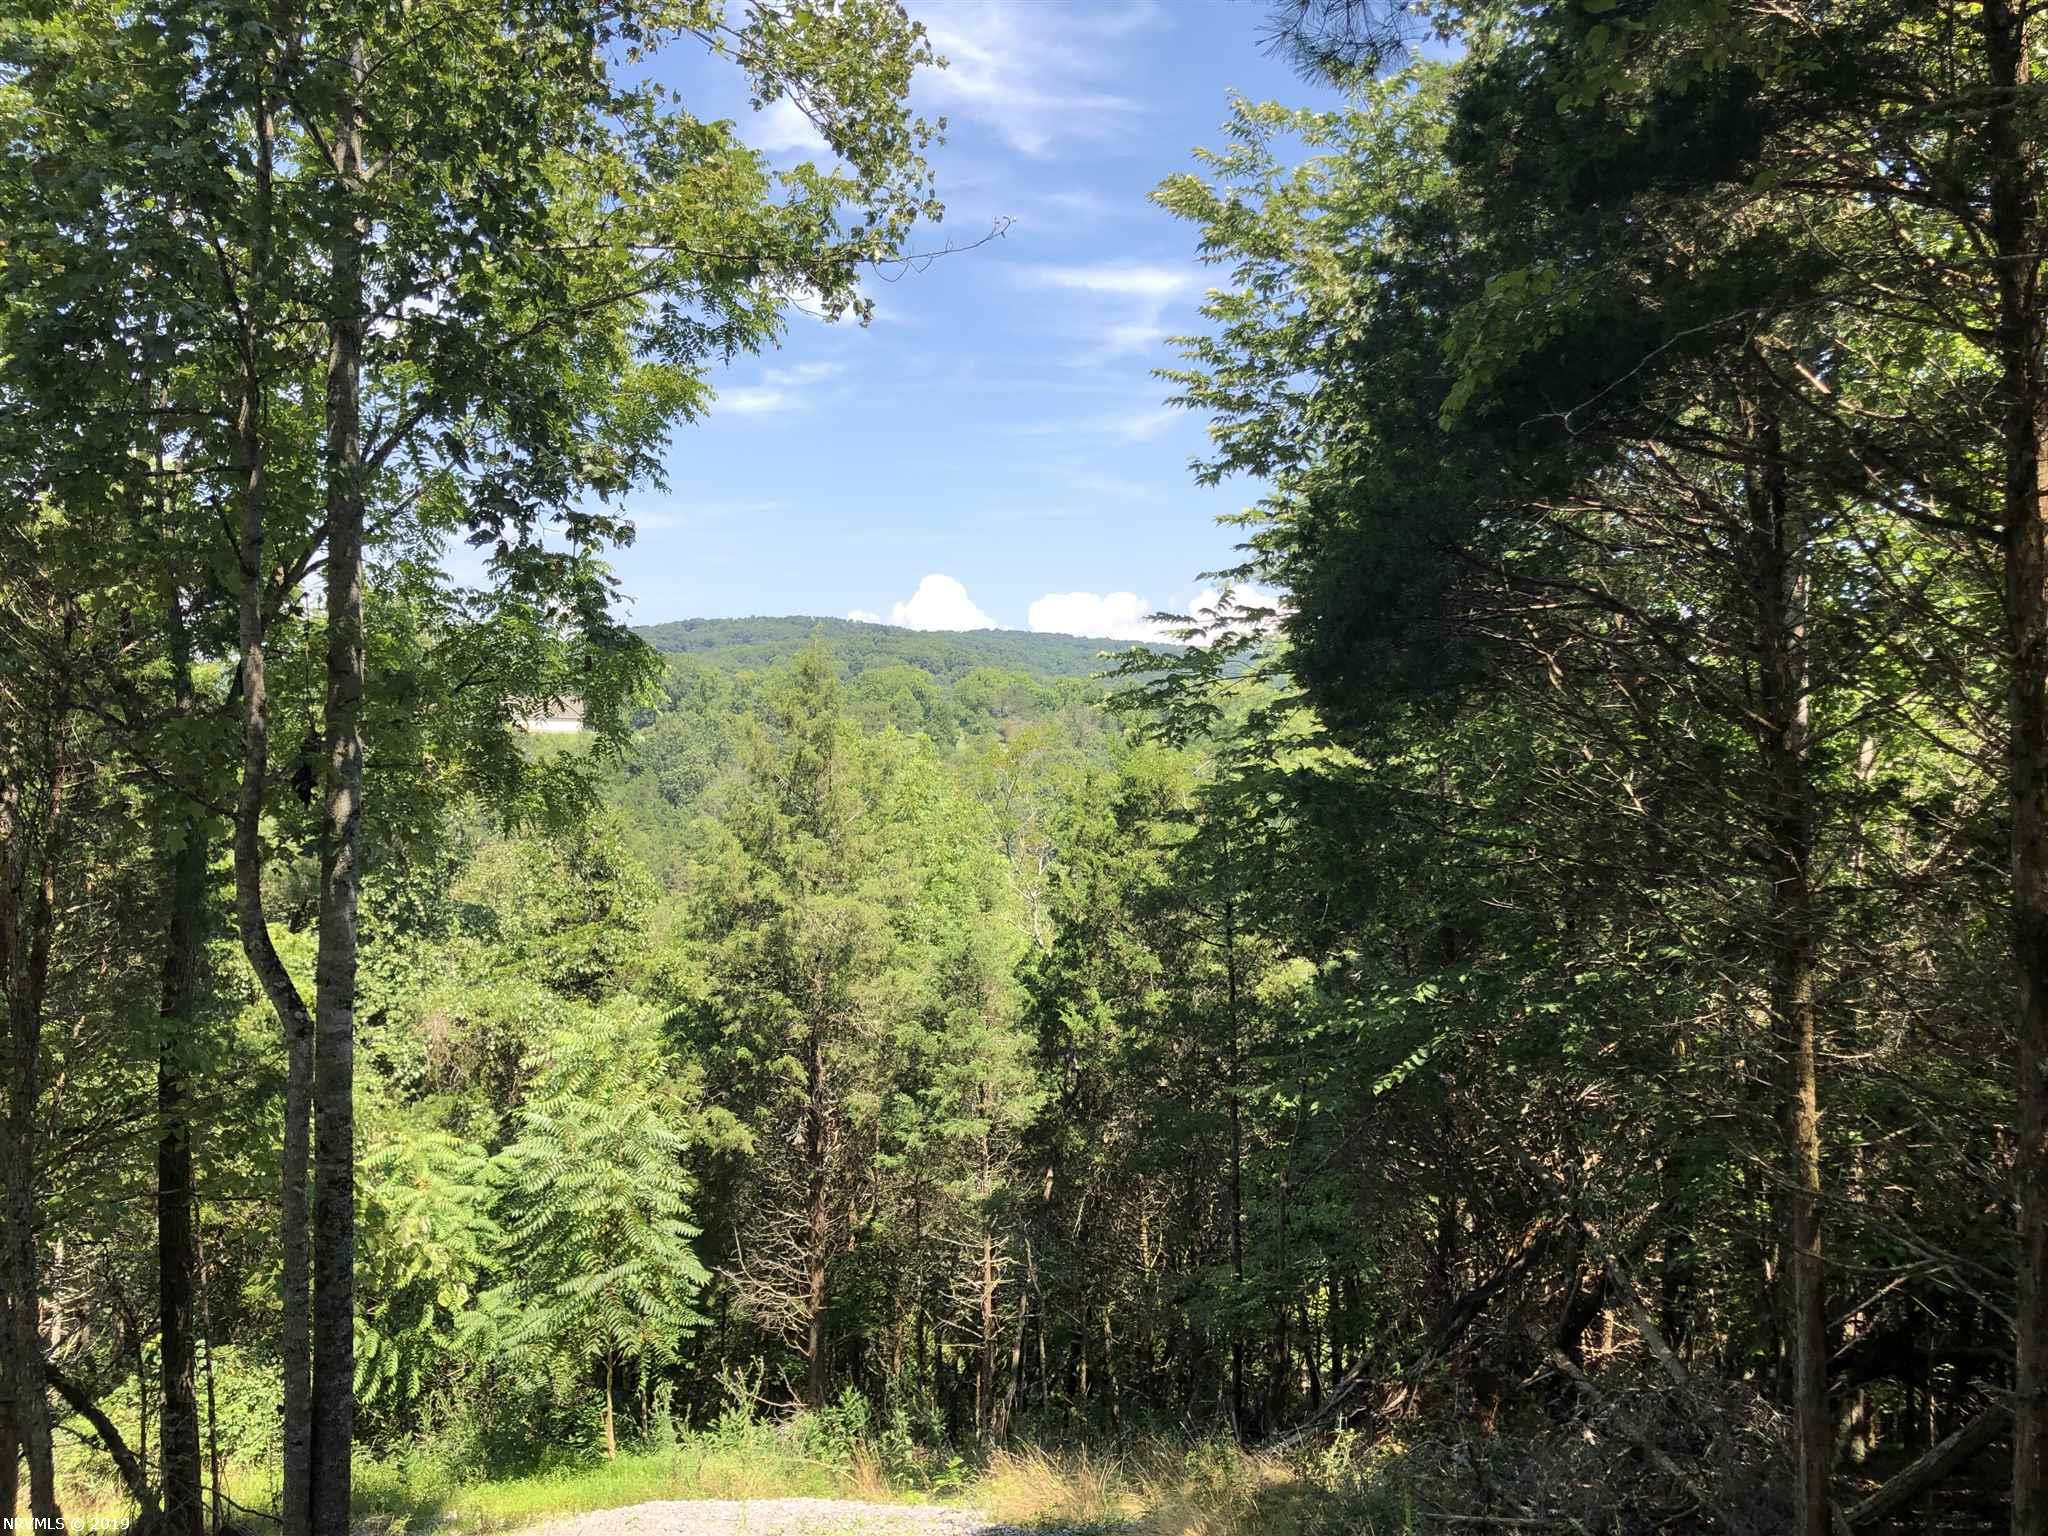 7.36 Acres of Wooded Land. Just a few miles From Christiansburg Zoned A-1 which Allows Mobile Homes. Home or Cabin Site with Views. Property is in the Christiansburg School System. MOTIVATED SELLER!!